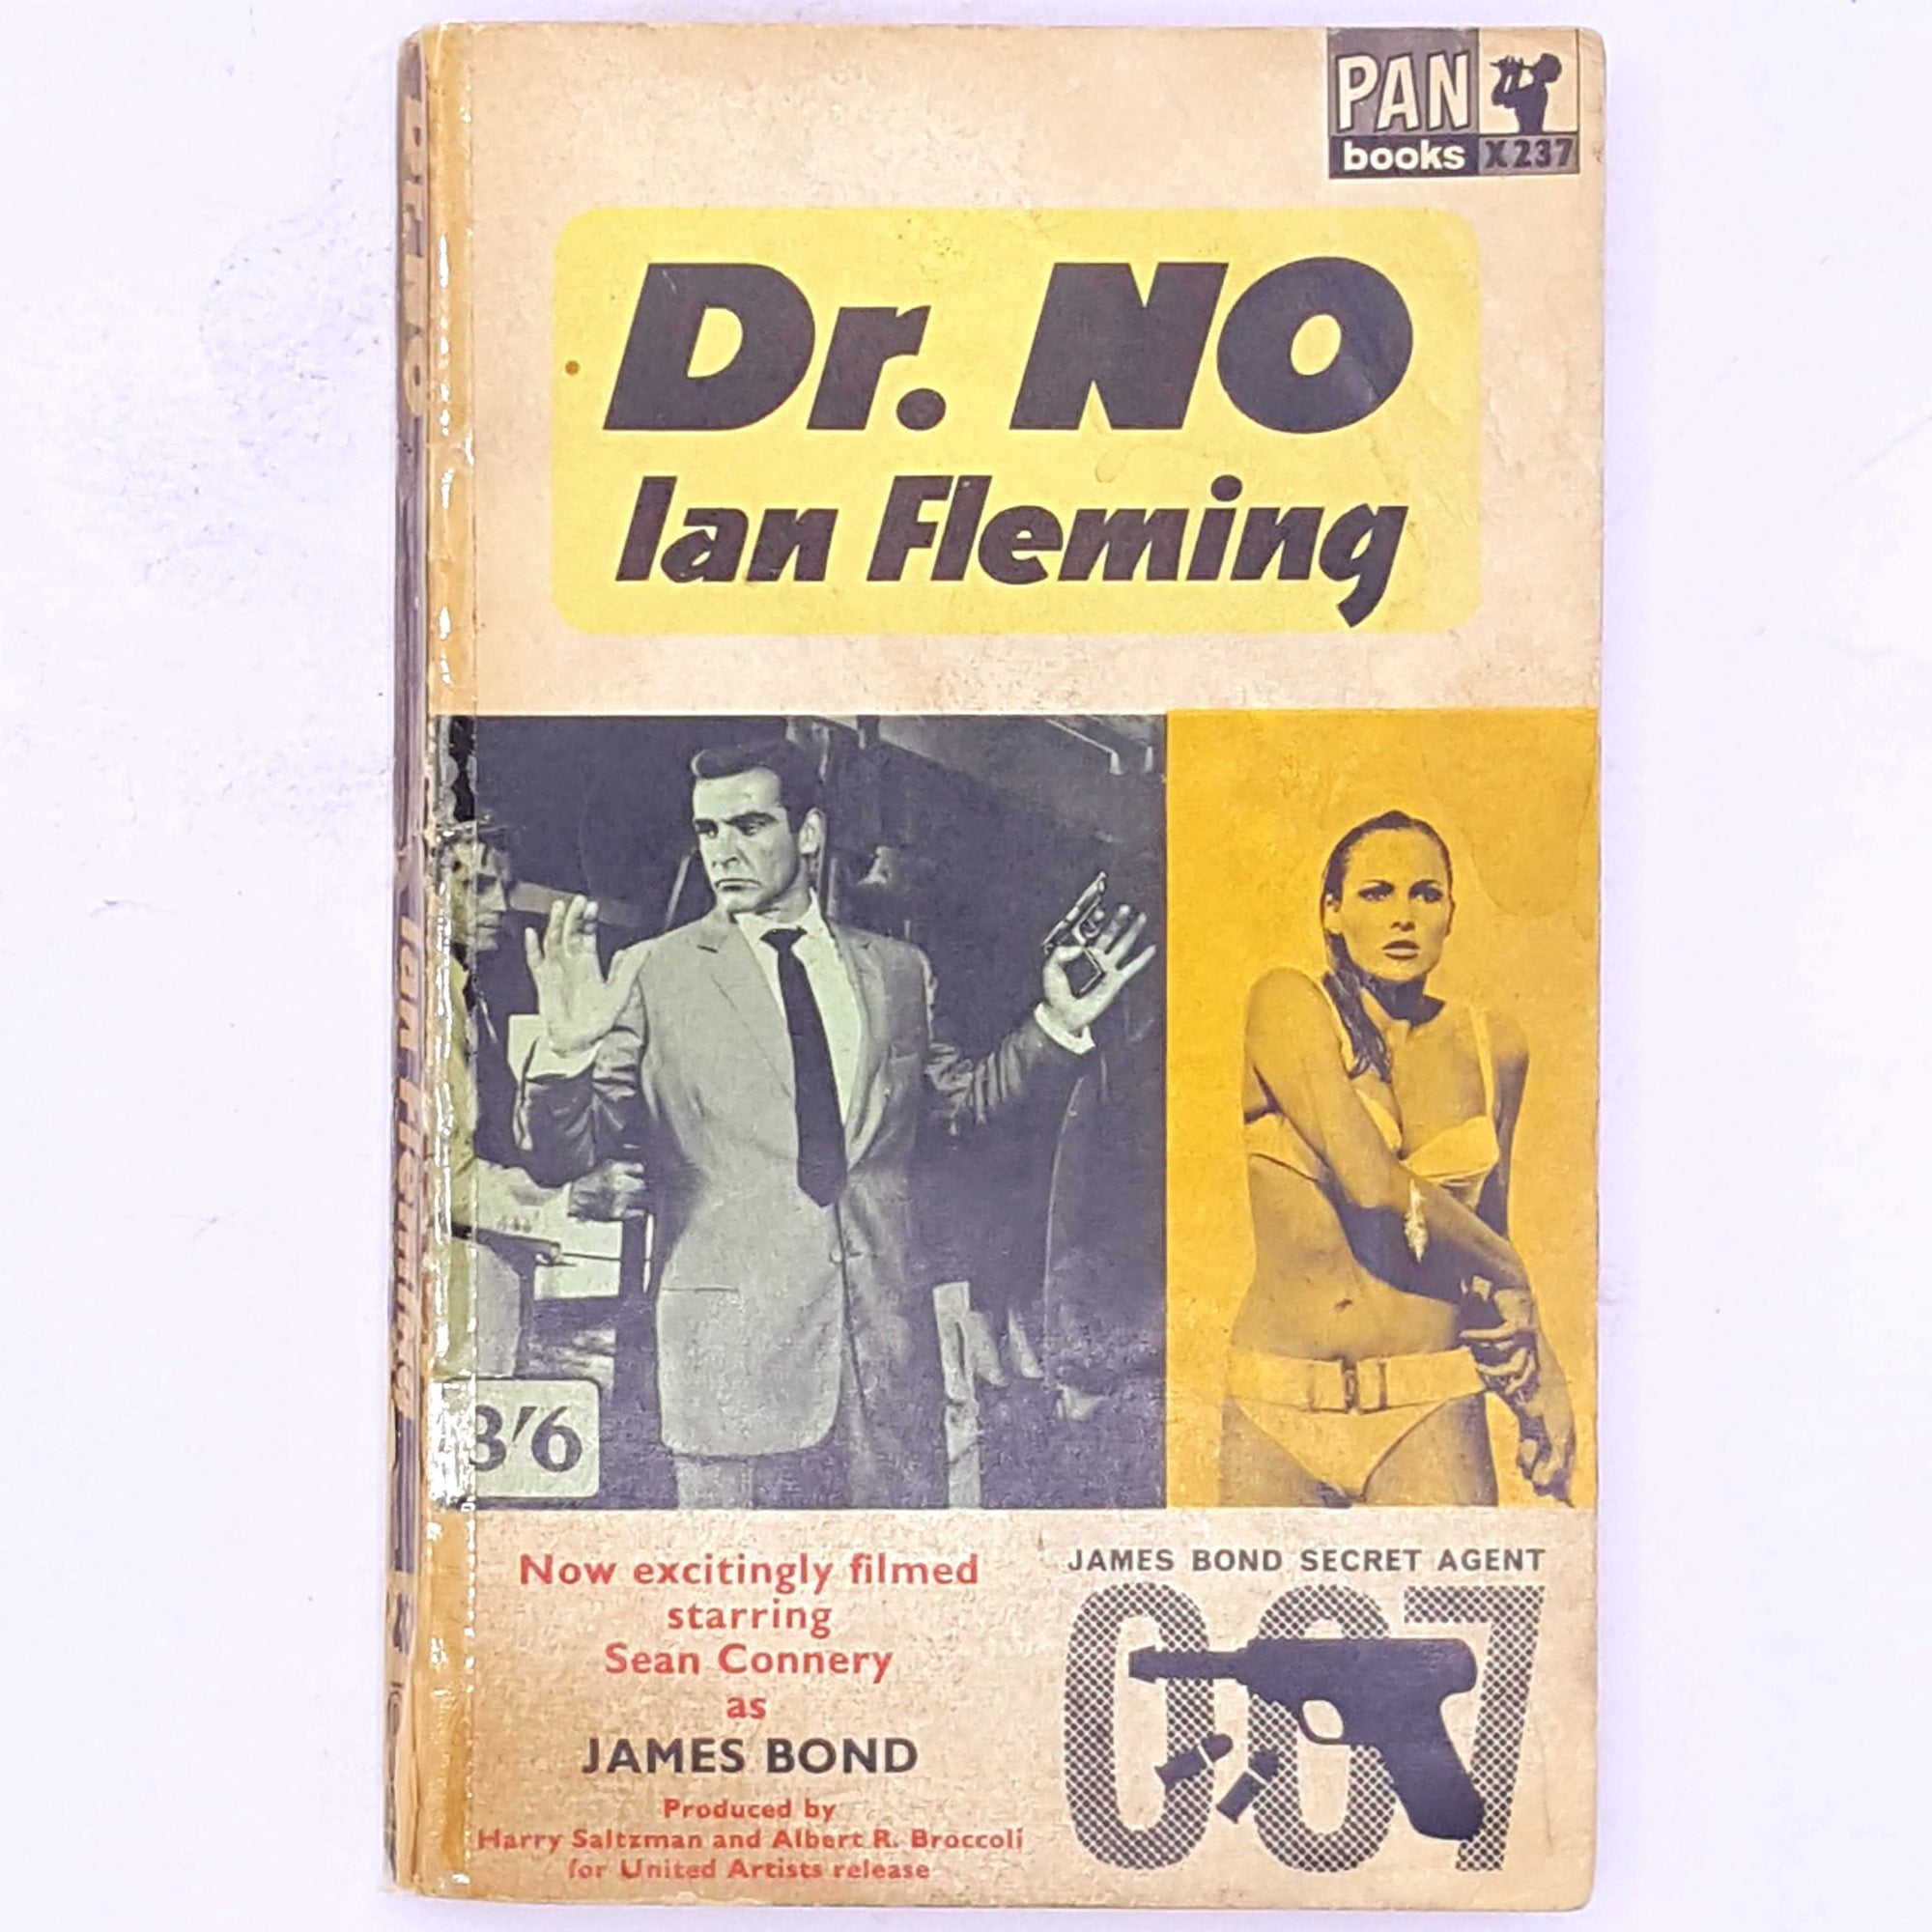 patterned-British-secret-agent-old-antique-dr-no-decorative-country-house-library-vintage-spy-crime-mystery-thriller-secret-service-007-james-bond-thrift-classic-books-ian-fleming-